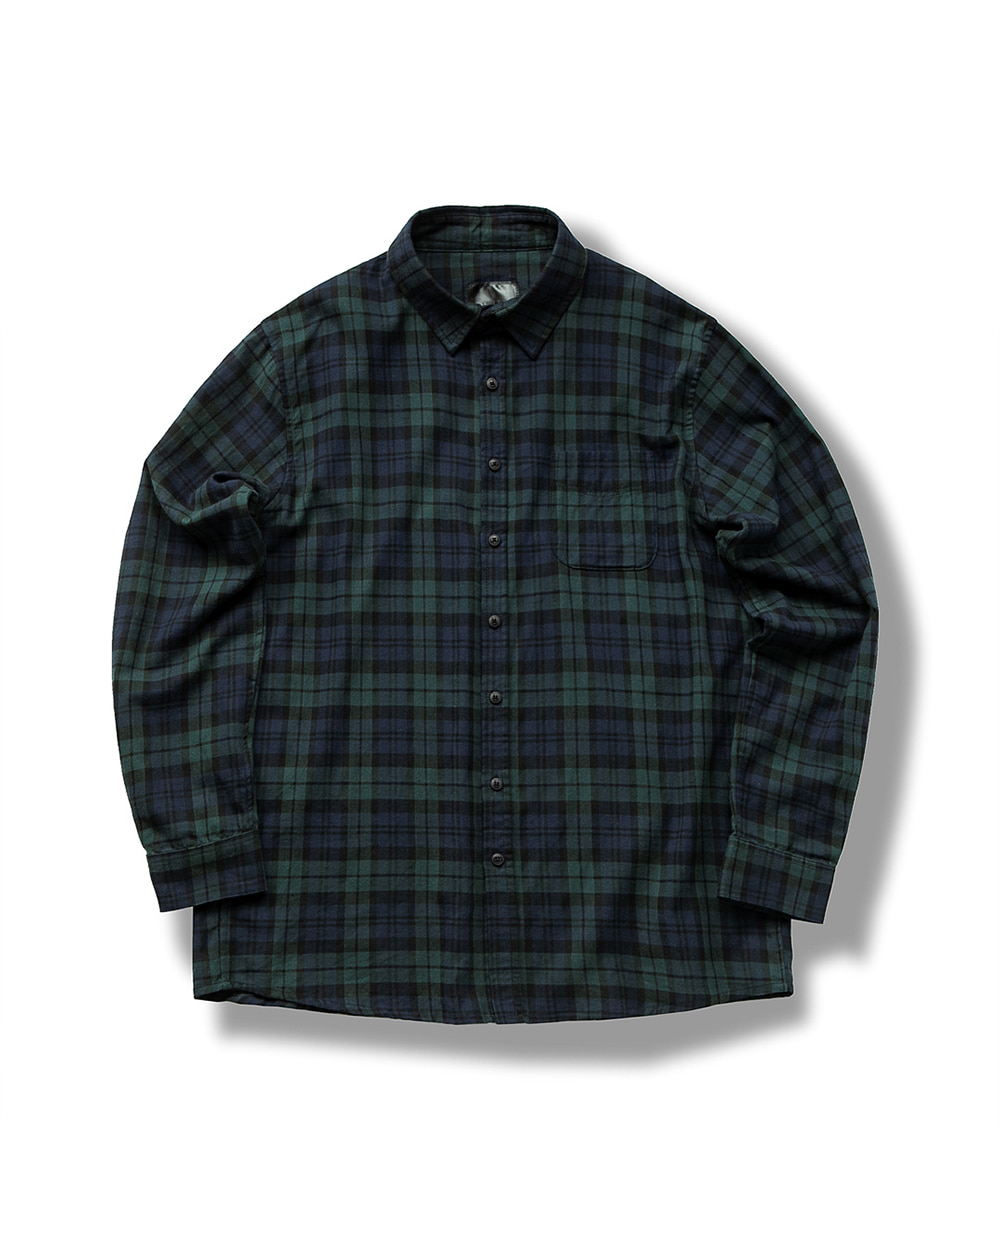 SCOTTISH CHECK SHIRT